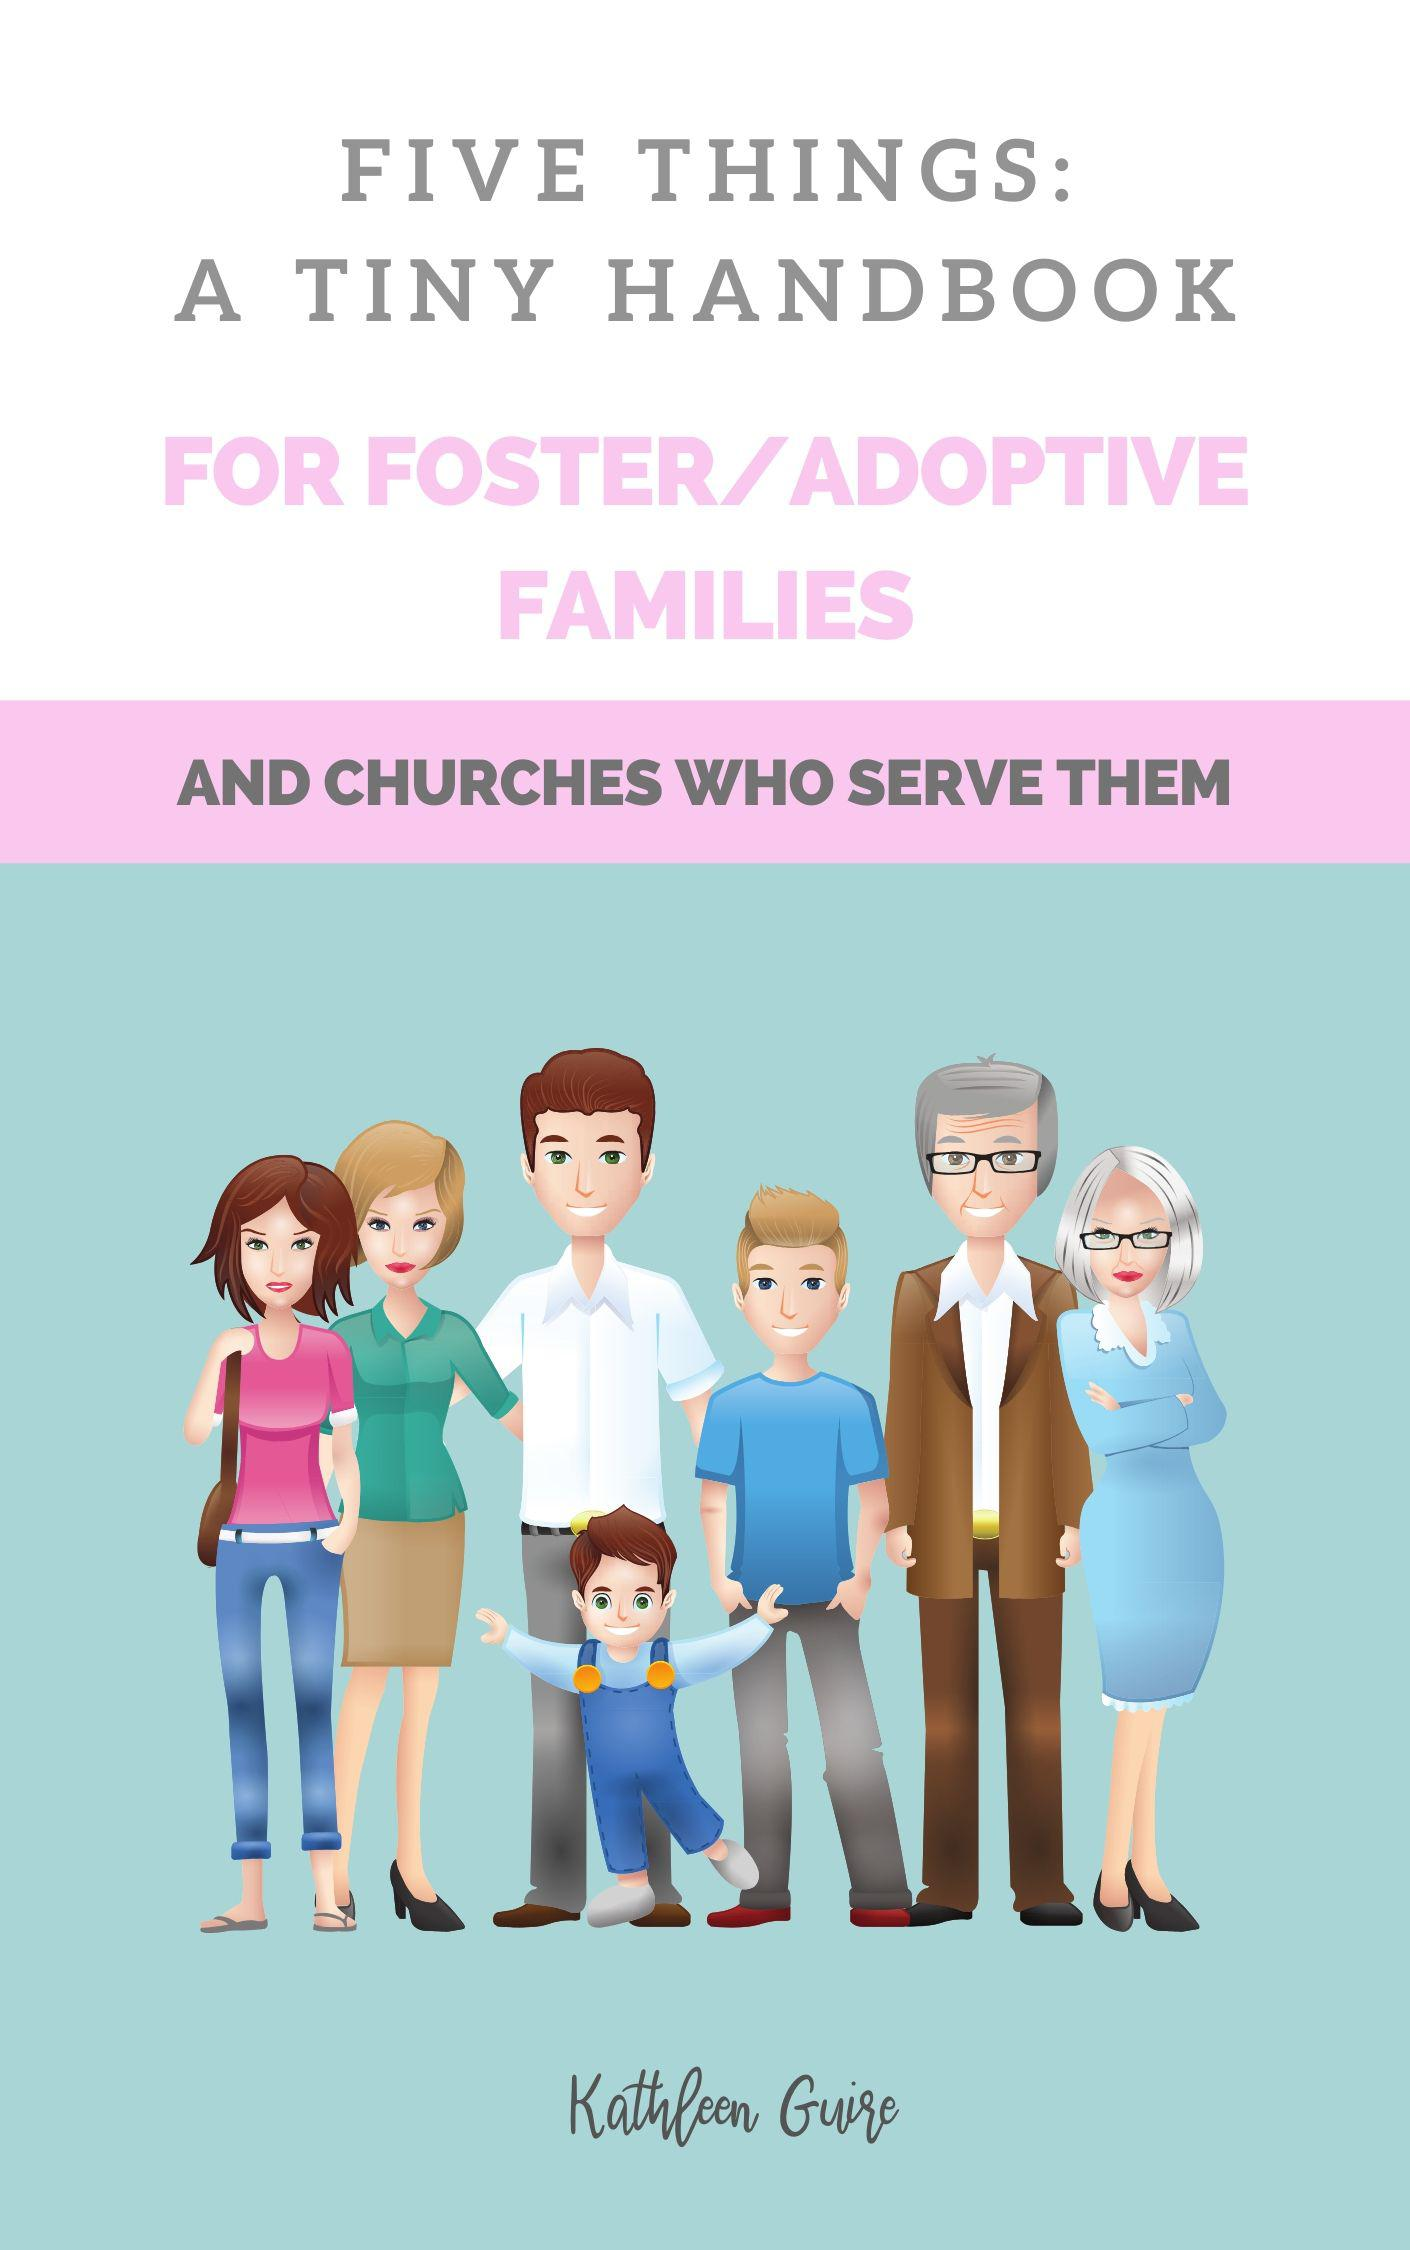 FIVE-THINGS-A-TINY-HANDBOOK-FOR-ADOPTIVEFOSTER-FAMILIES-original